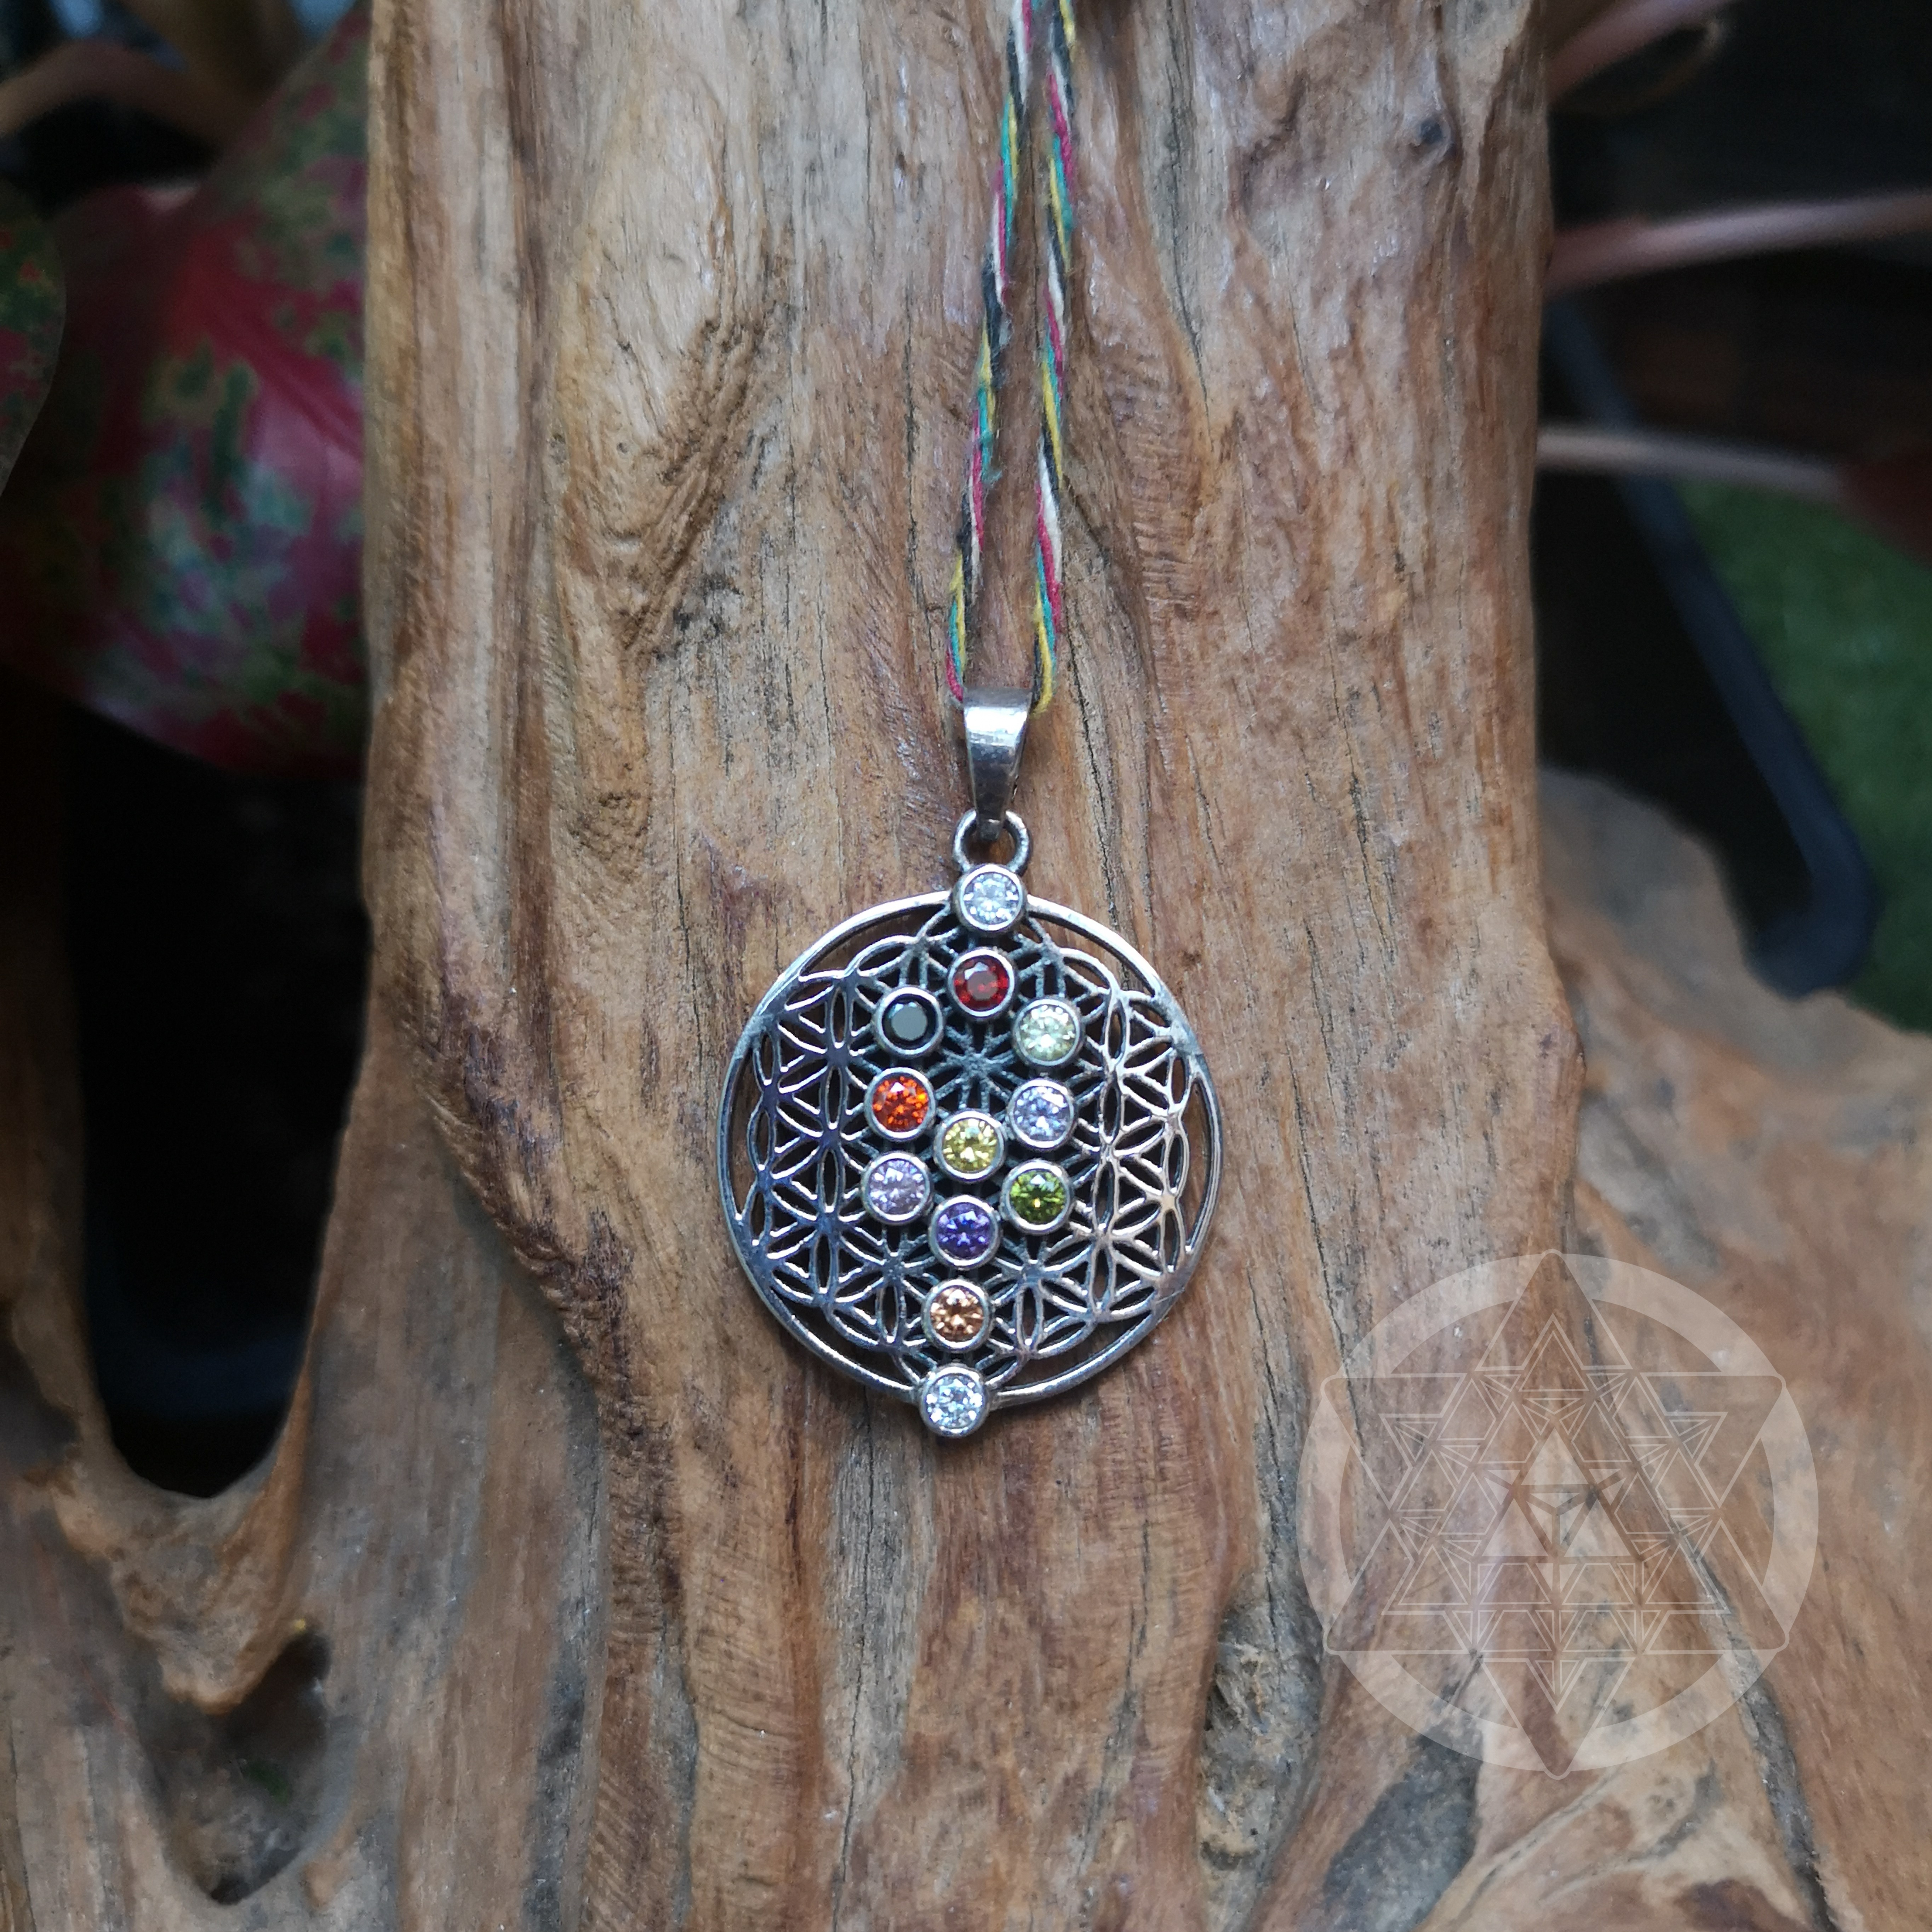 Kabbalah Tree Of Life Pendant / The goal of the game is to enter into.